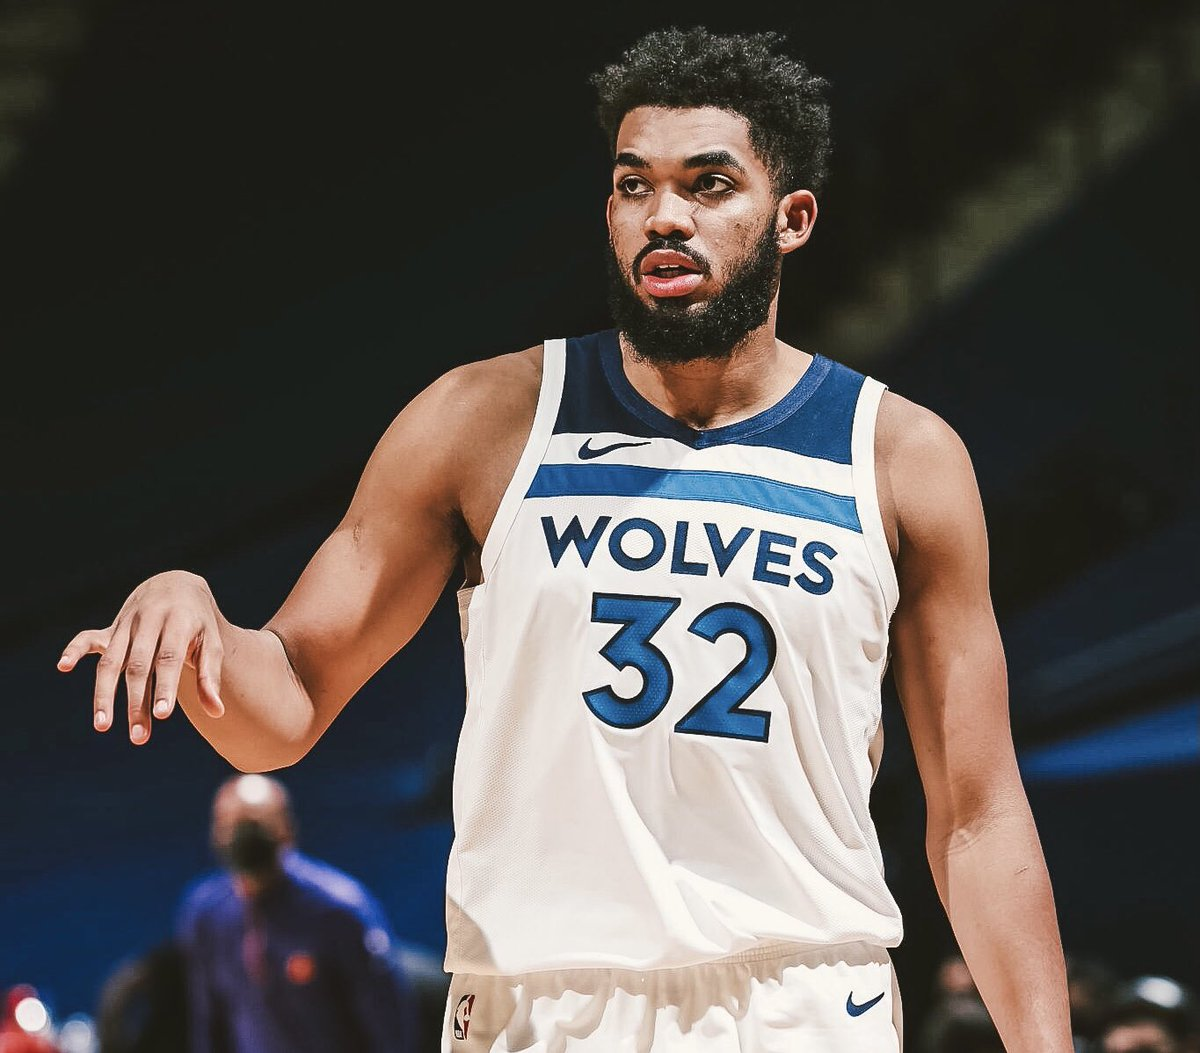 In the last 35 games Karl-Anthony Towns has played in, the Timberwolves record is 5-30.   Should KAT consider forcing his way out of MN? https://t.co/qPfWcmgoDD